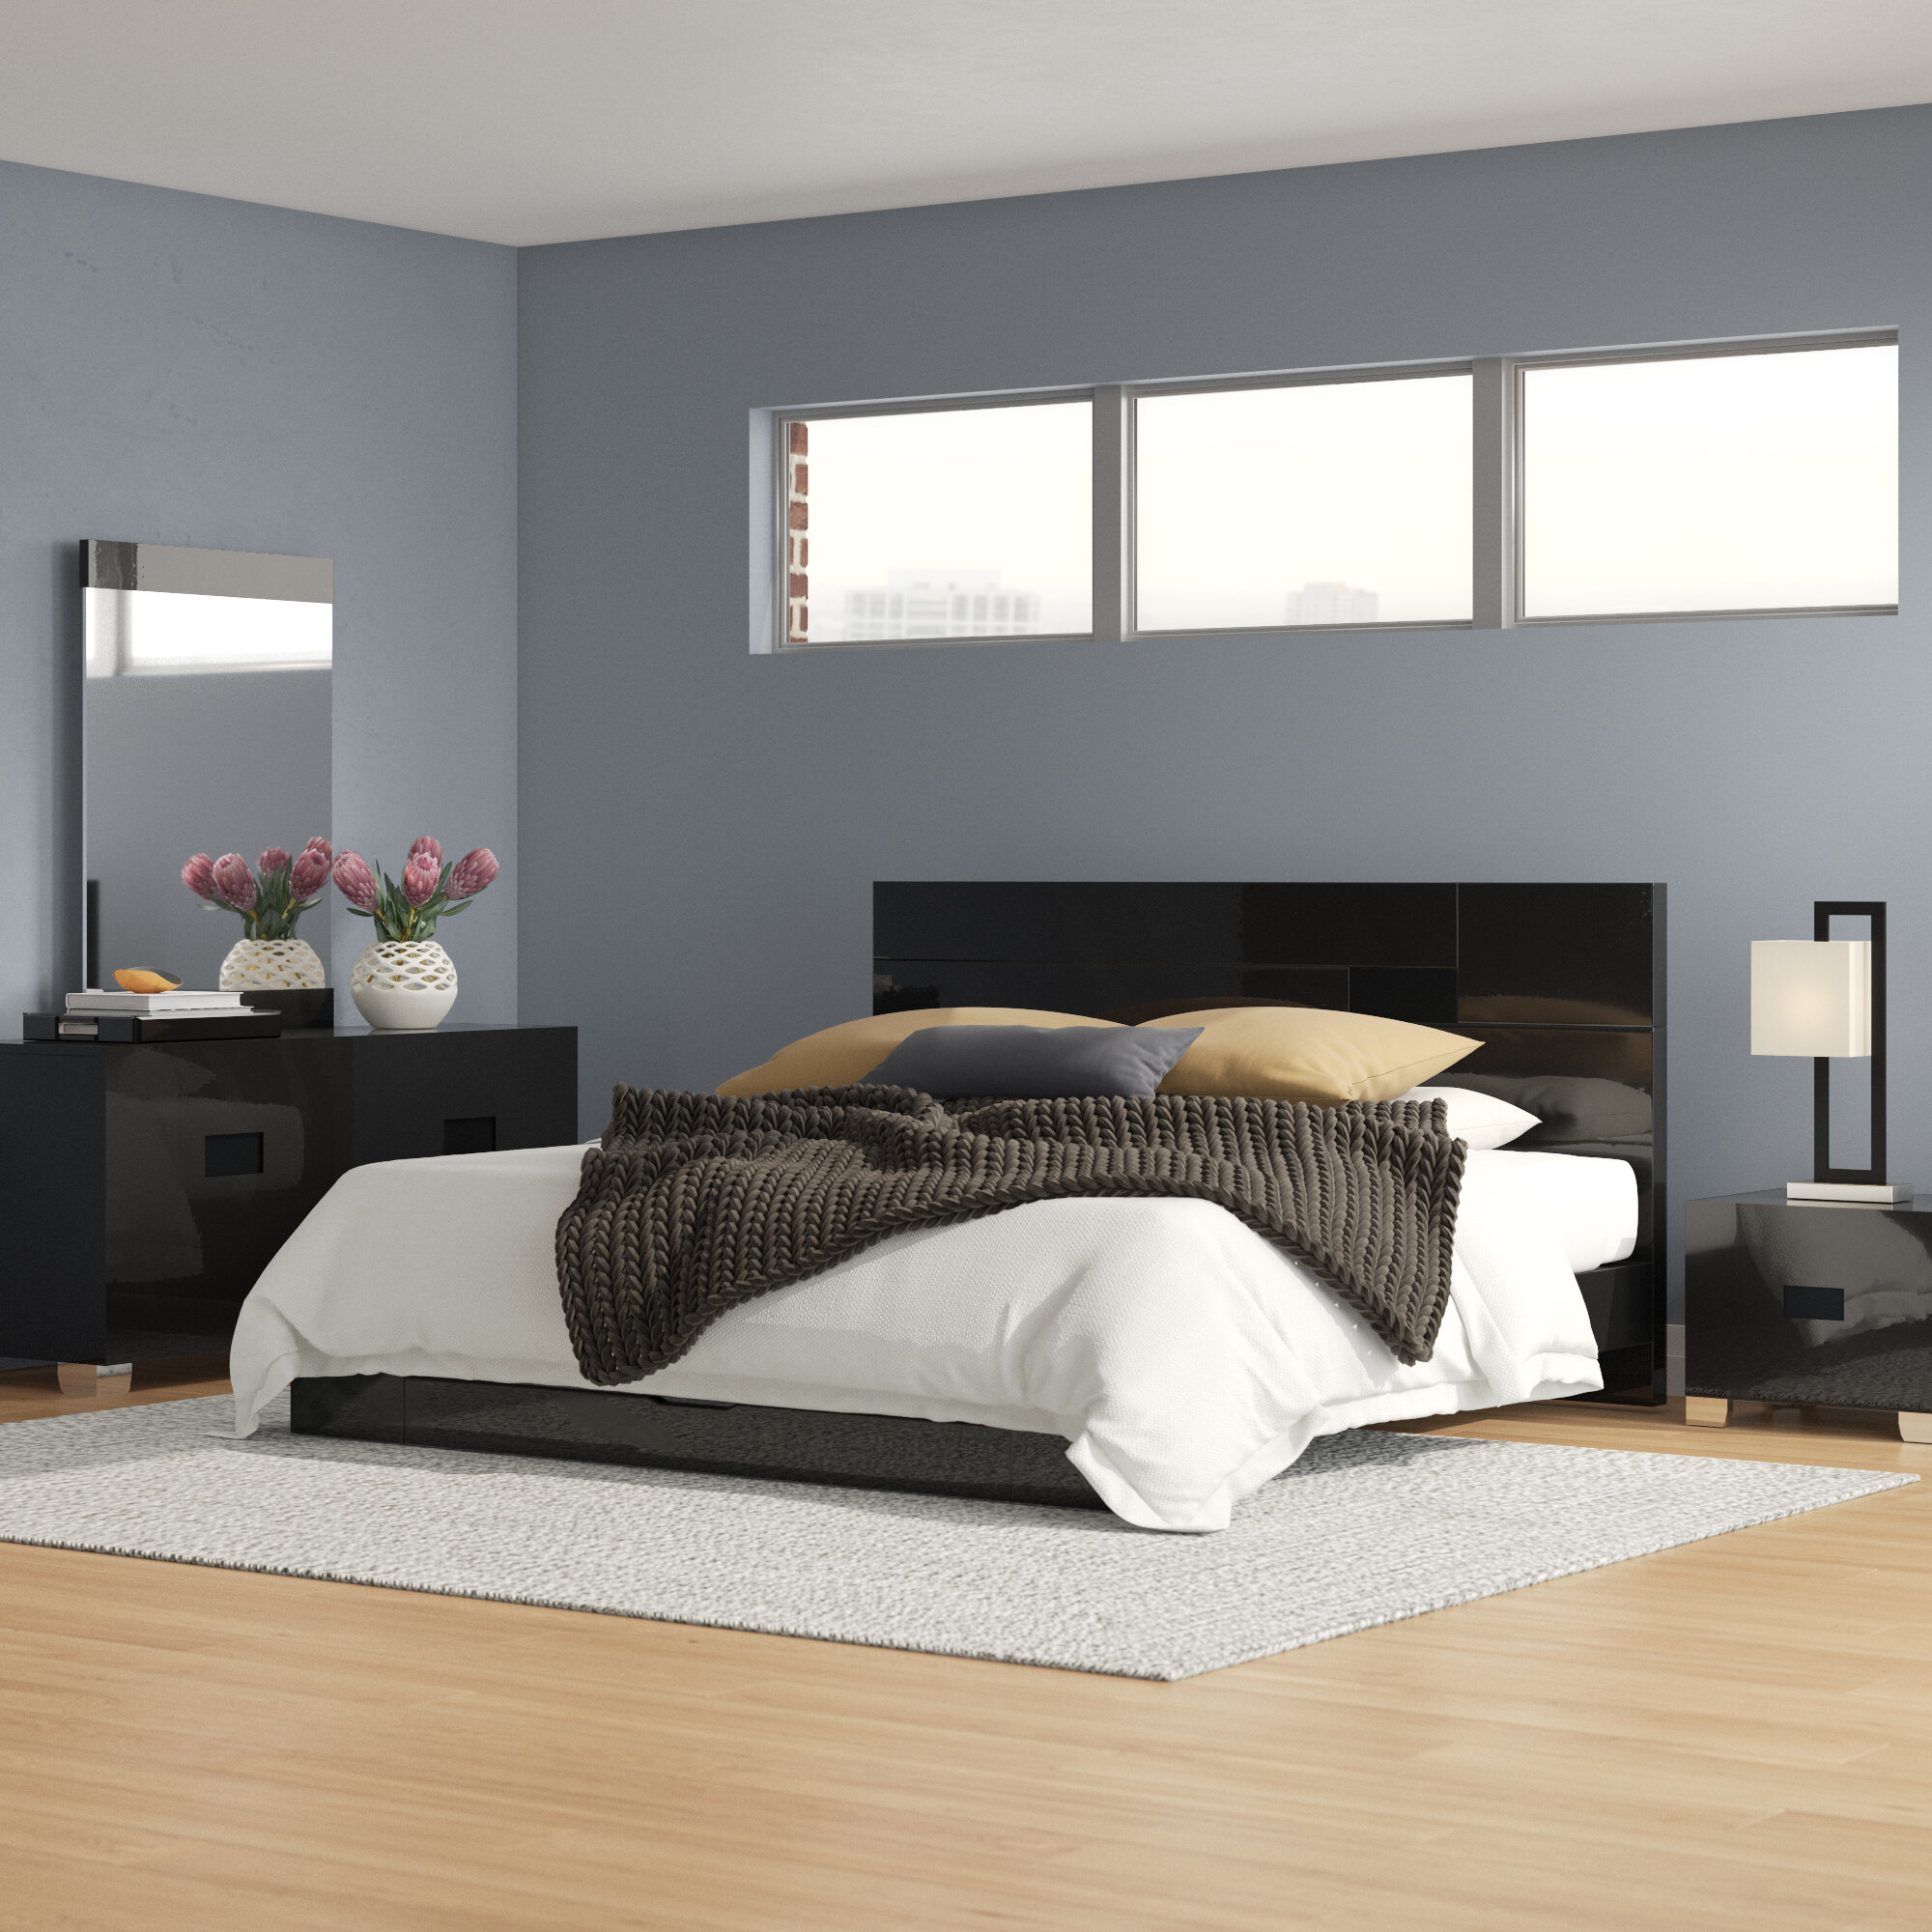 Modern Contemporary Wood Bedroom Sets You Ll Love In 2021 Wayfair